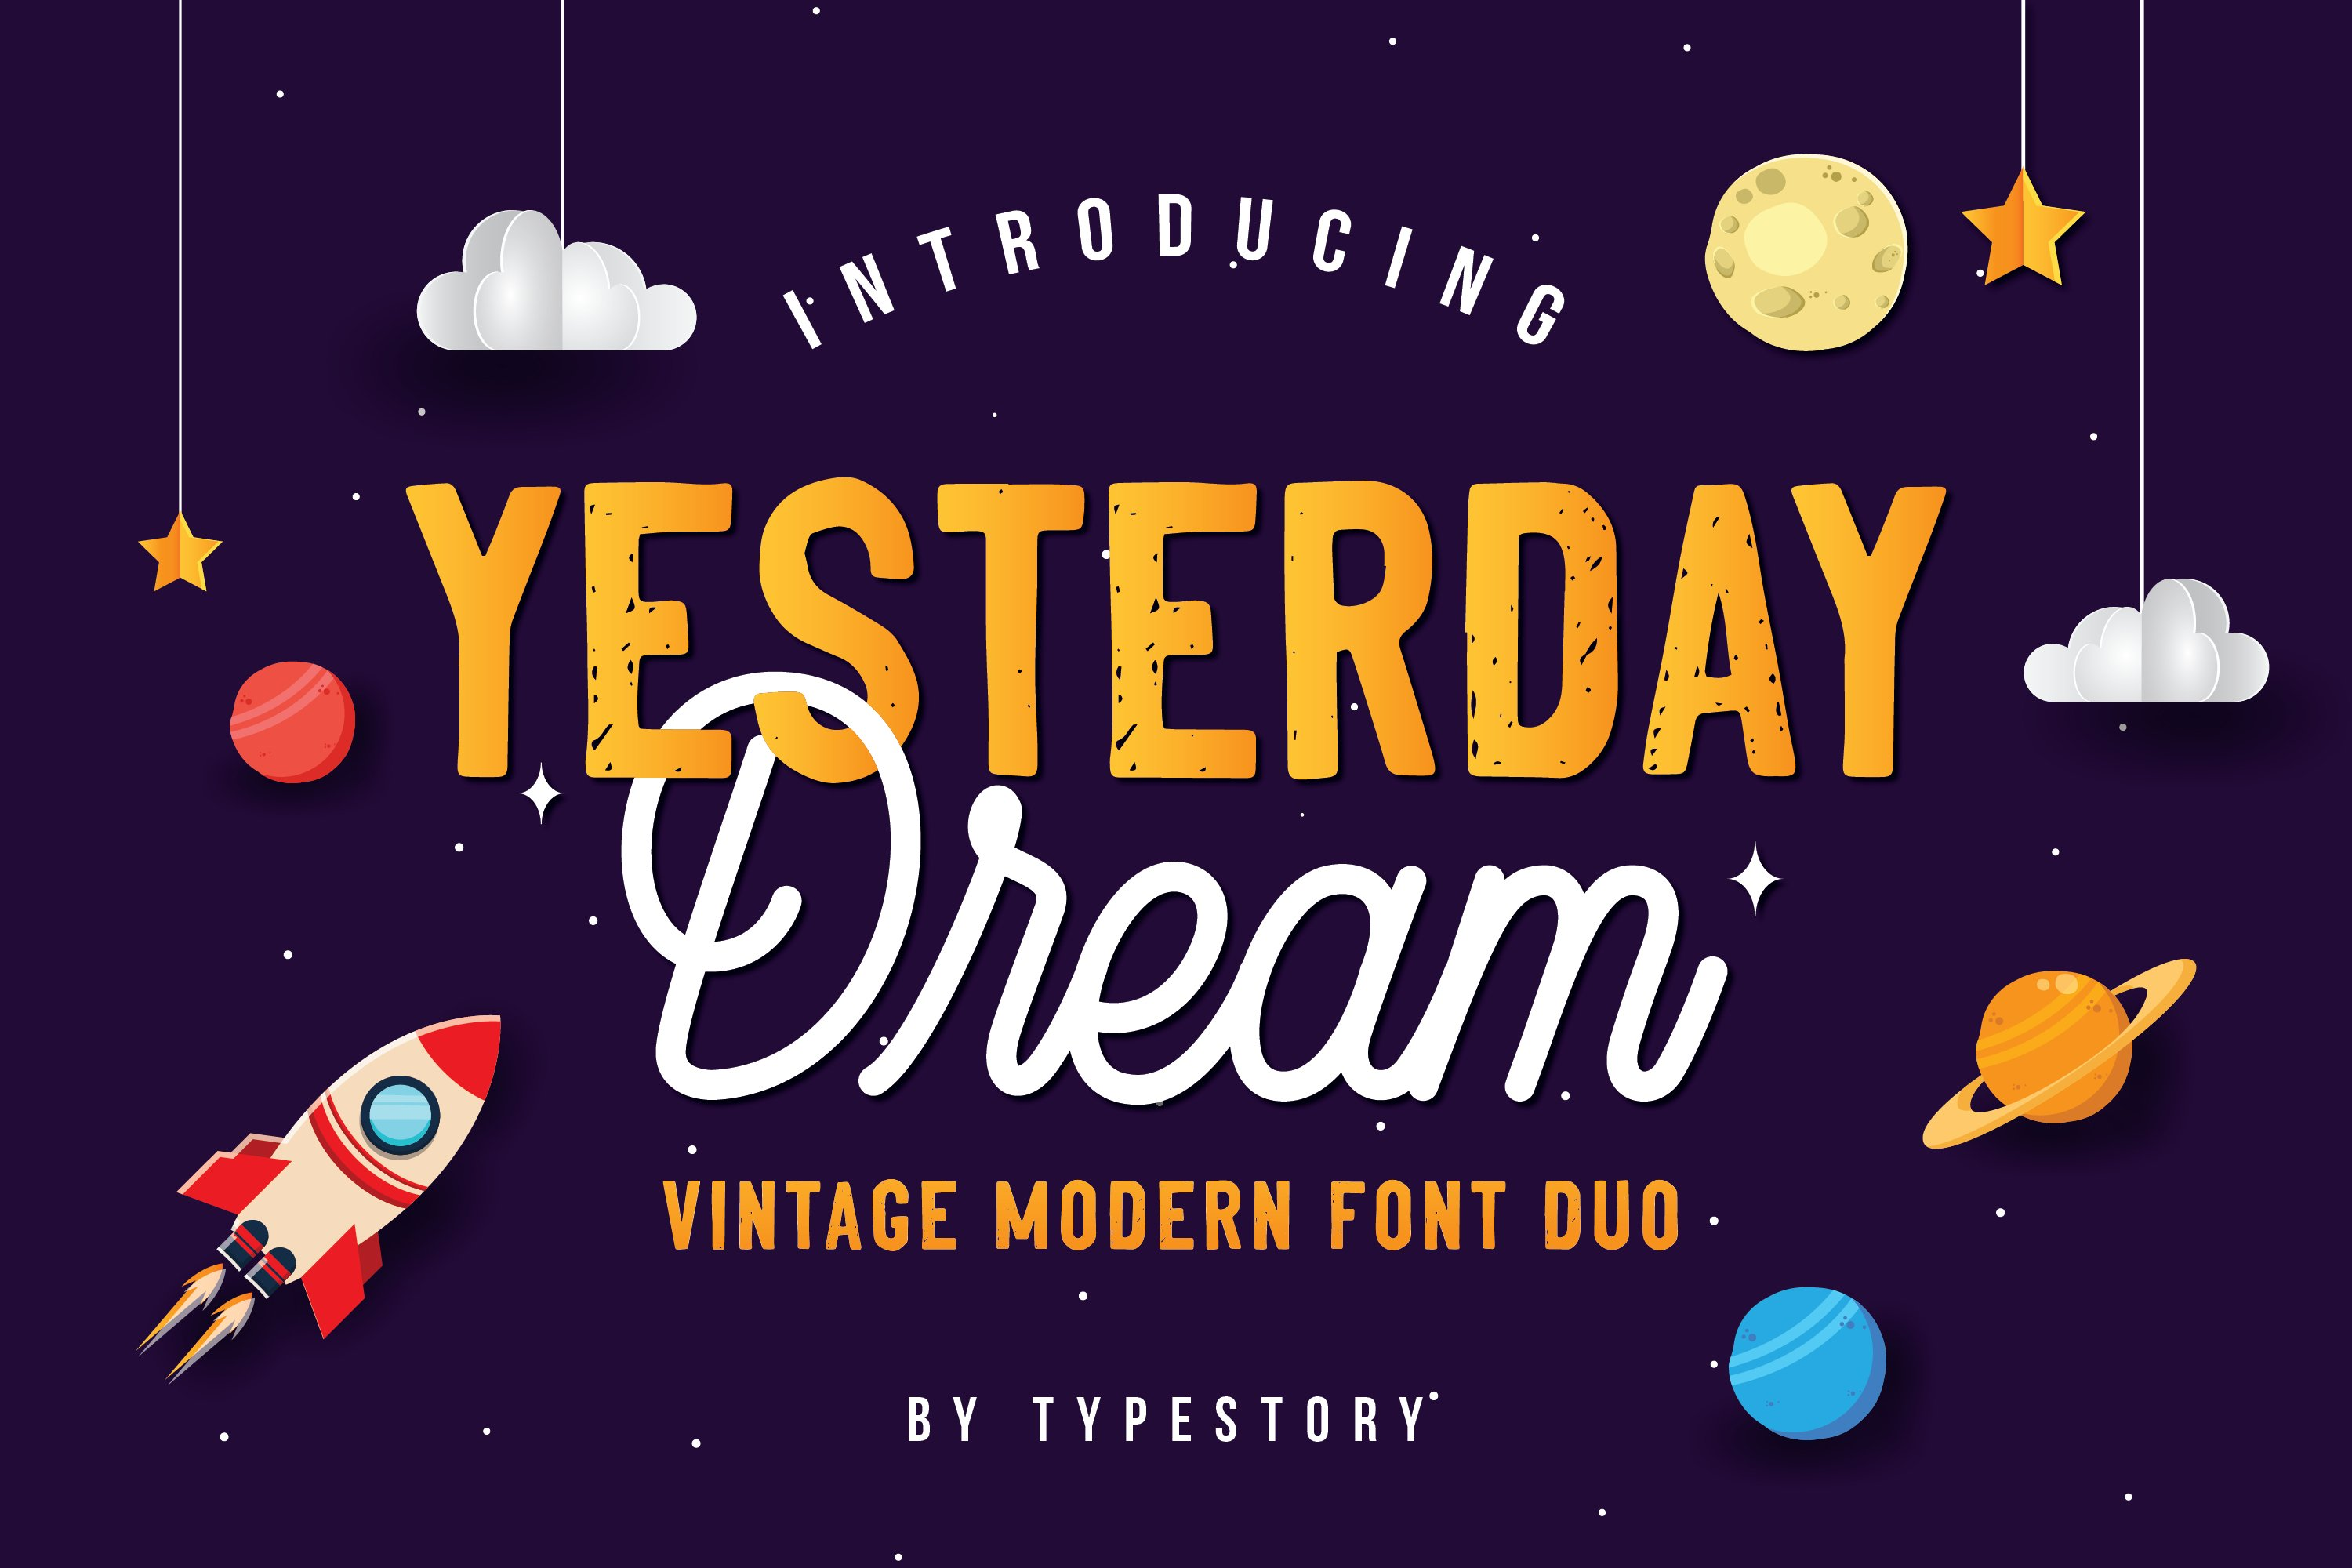 Yesterday Dream Font Duo example image 1